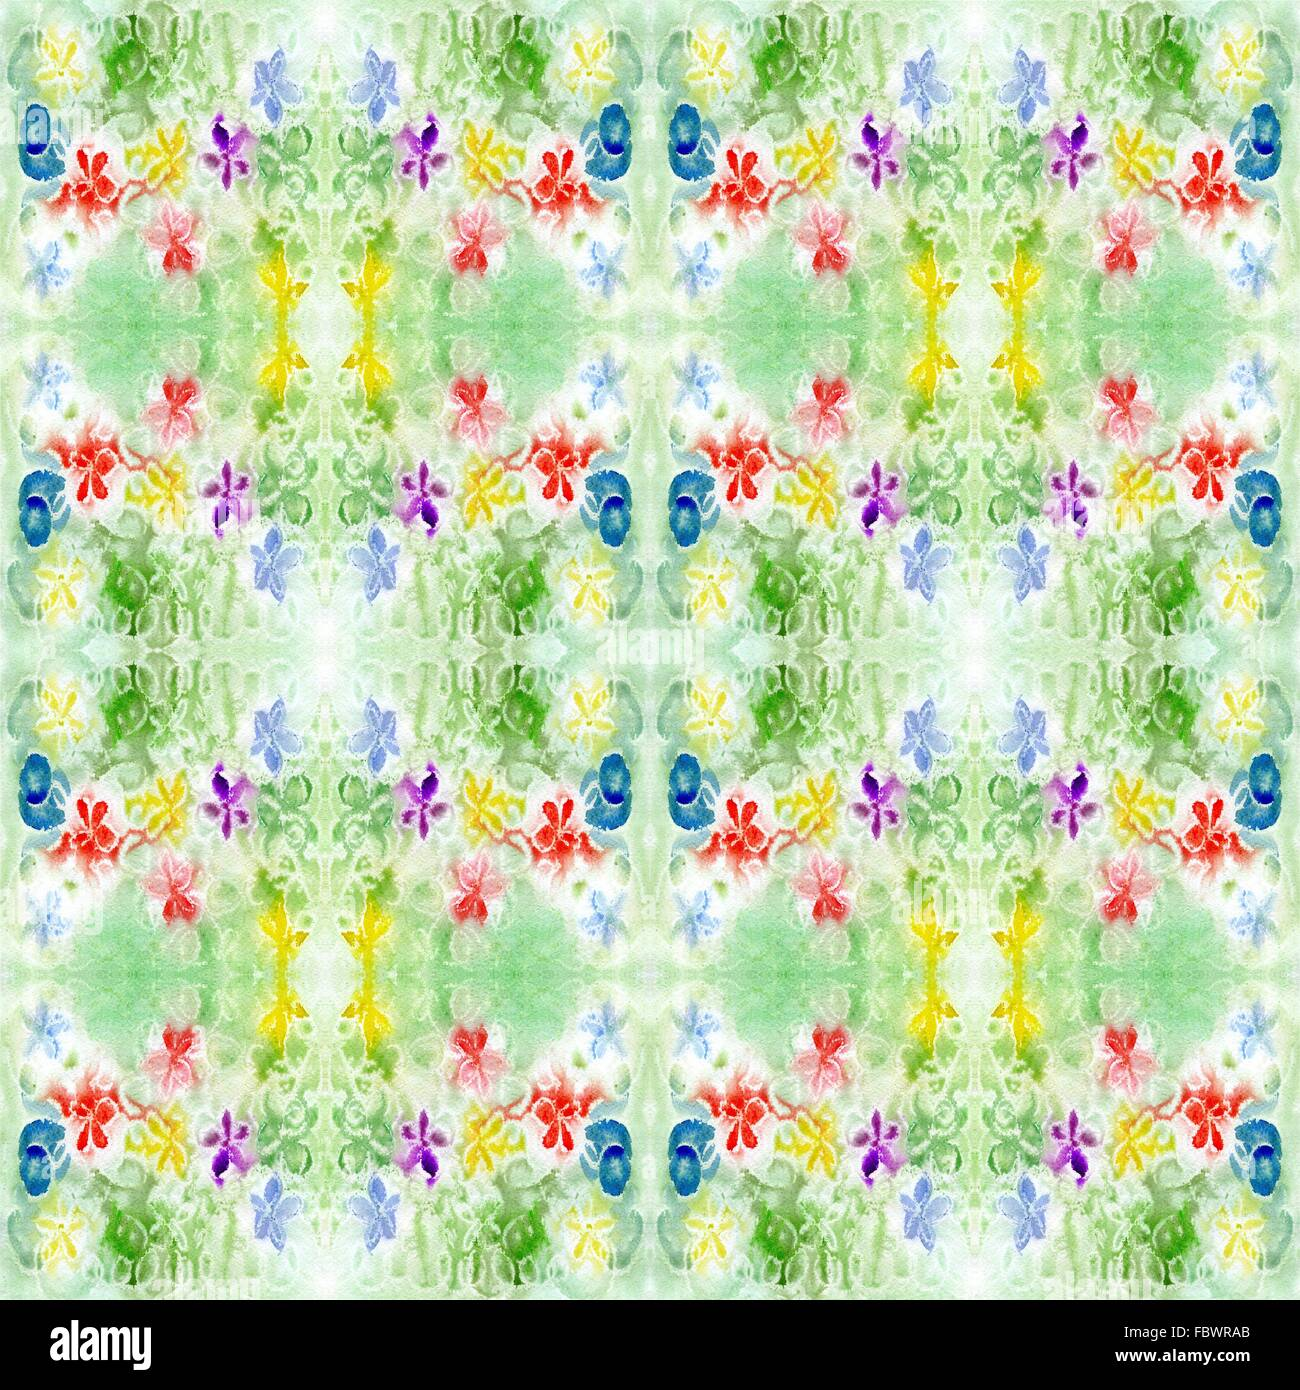 watercolor green pattern repetition - Stock Image